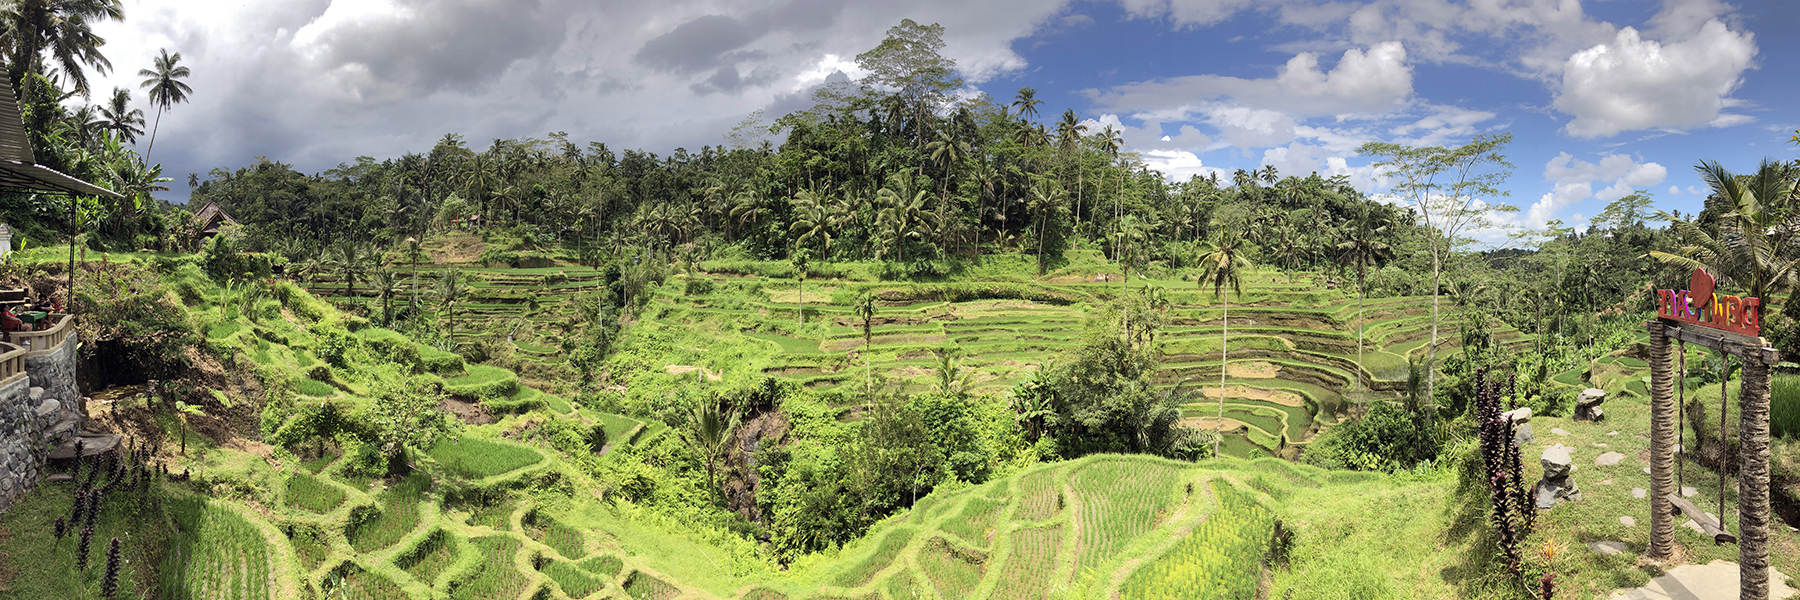 IMG_0557_rice terrace*_pano-3-1_lr